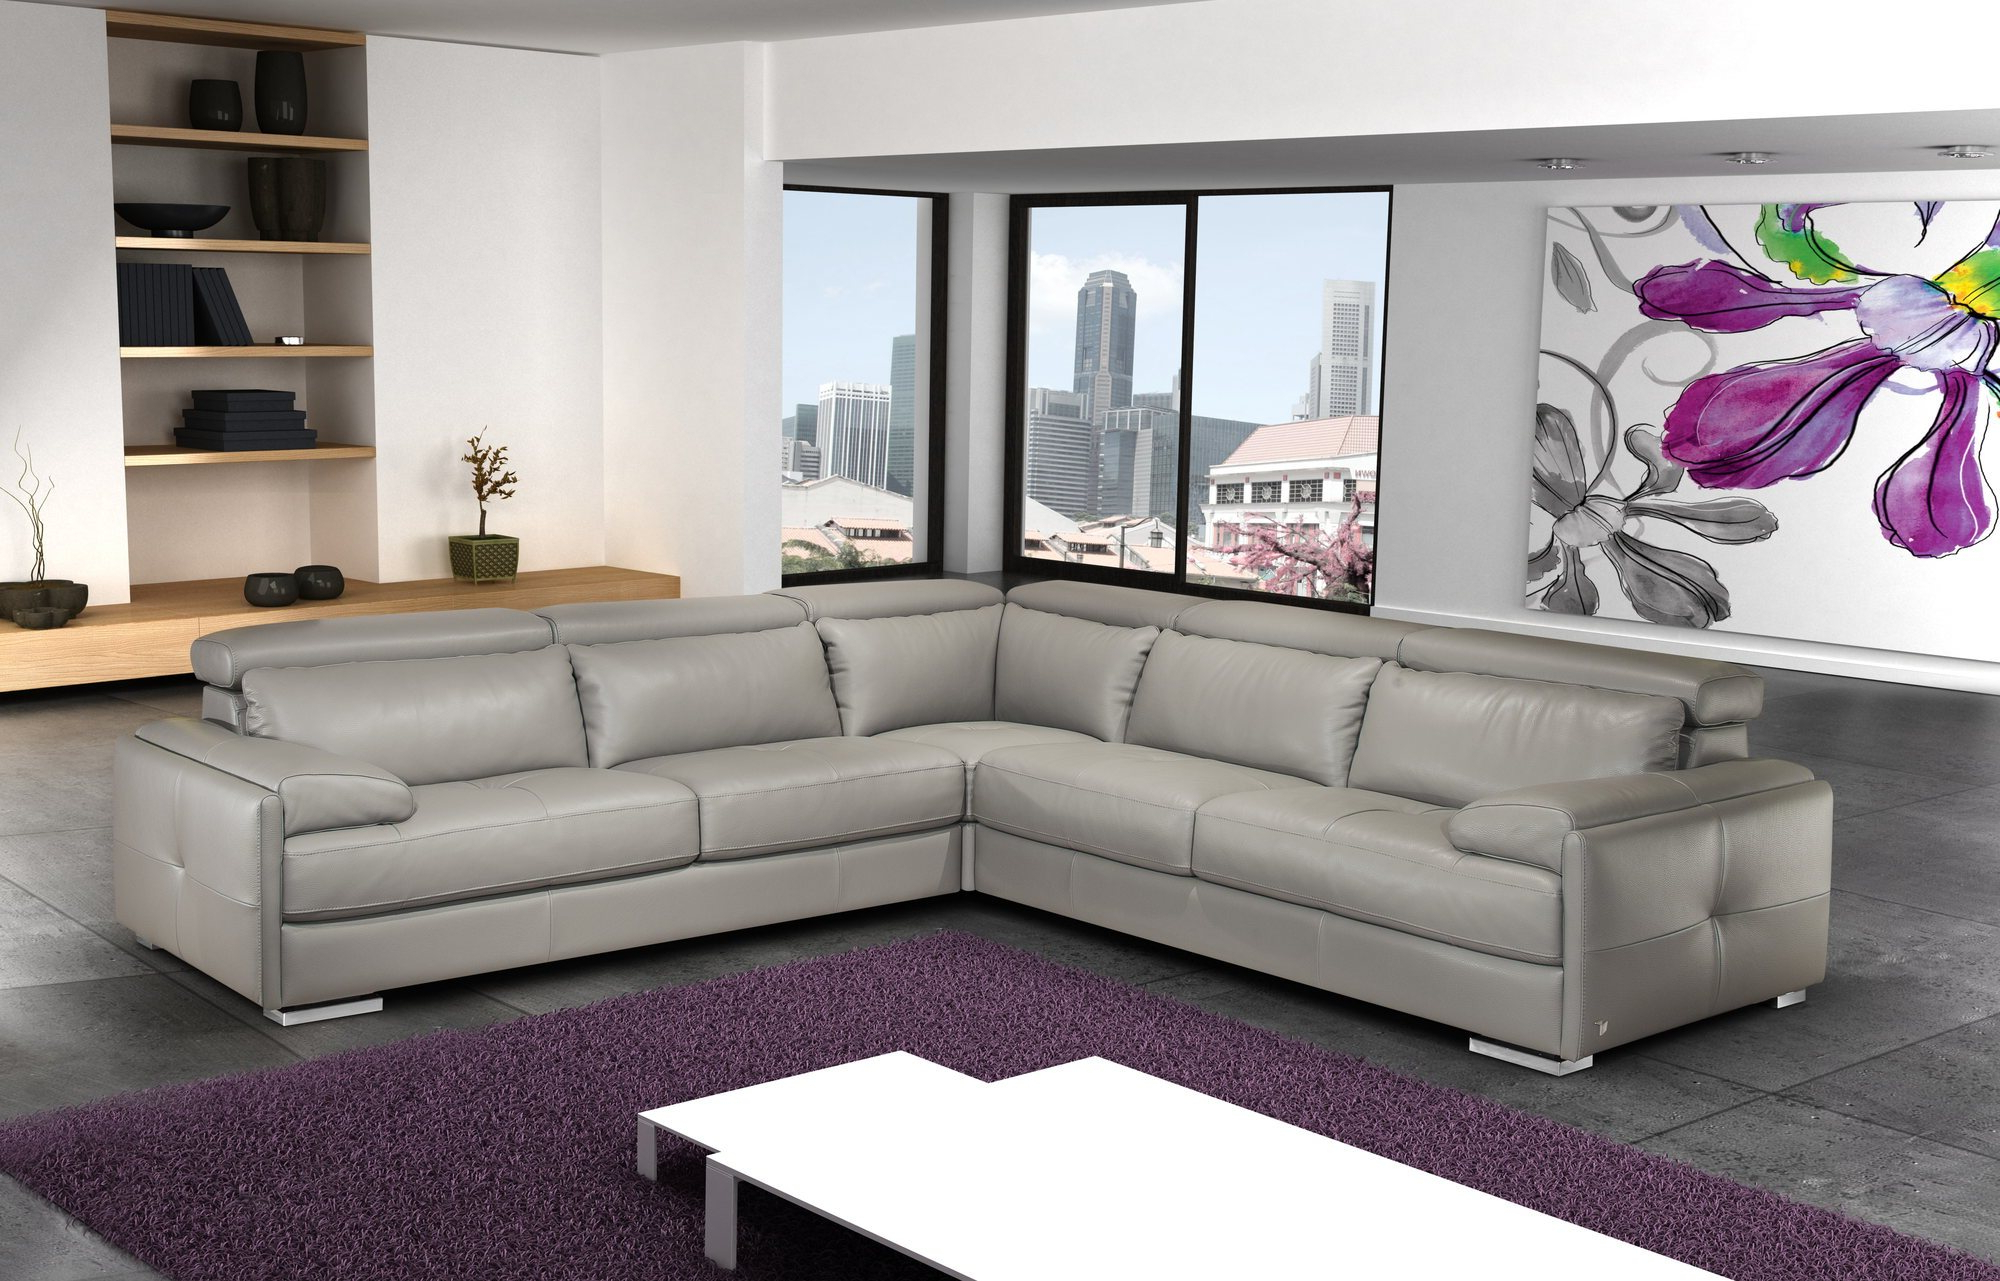 Wonderful Greylear Sectional Sofa Grey Lear Sectional Sofa About For Latest Nico Grey Sectionals With Left Facing Storage Chaise (View 20 of 20)